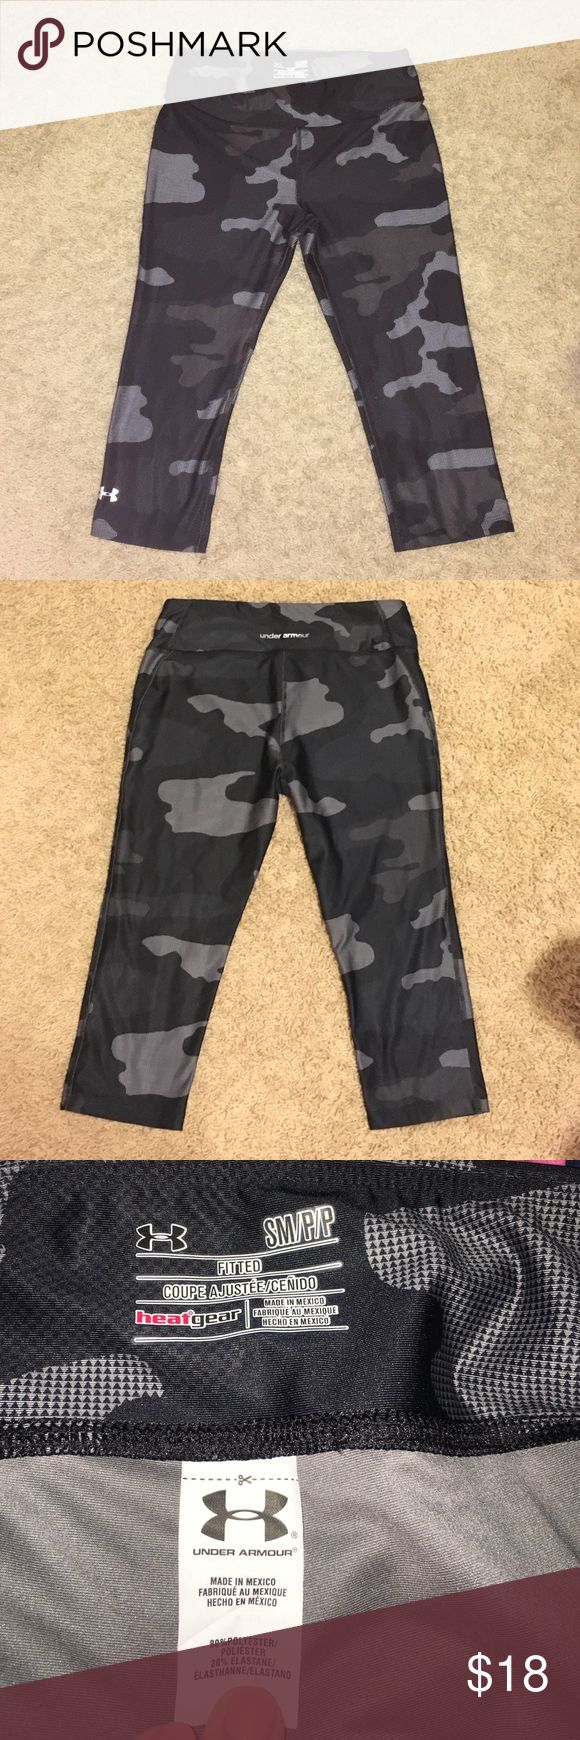 Women's Under Armour quarter length camo leggings Like new condition only worn twice:) Under Armour Pants Leggings